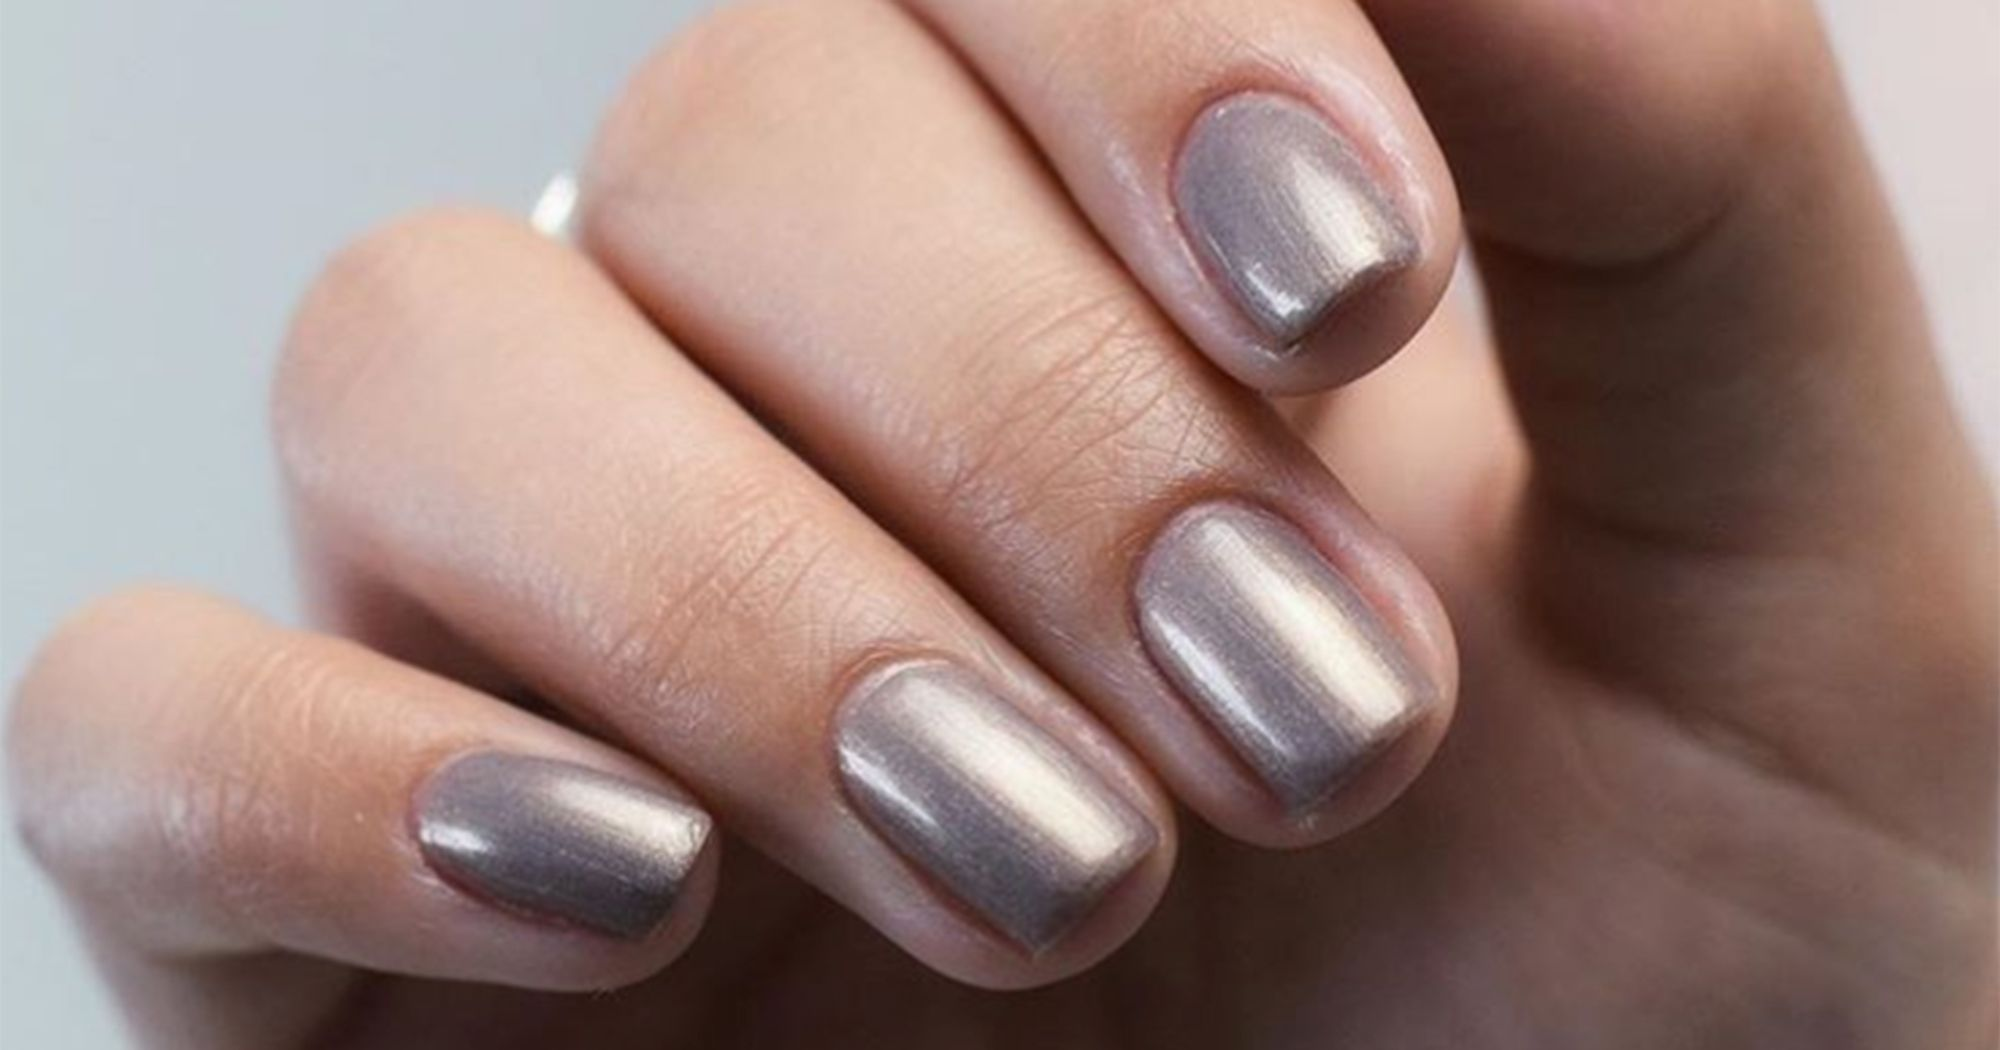 THE BEST NAIL POLISH COLORS SOUTH AFRICAN WOMEN CAN WEAR IN WINTER 2020 1